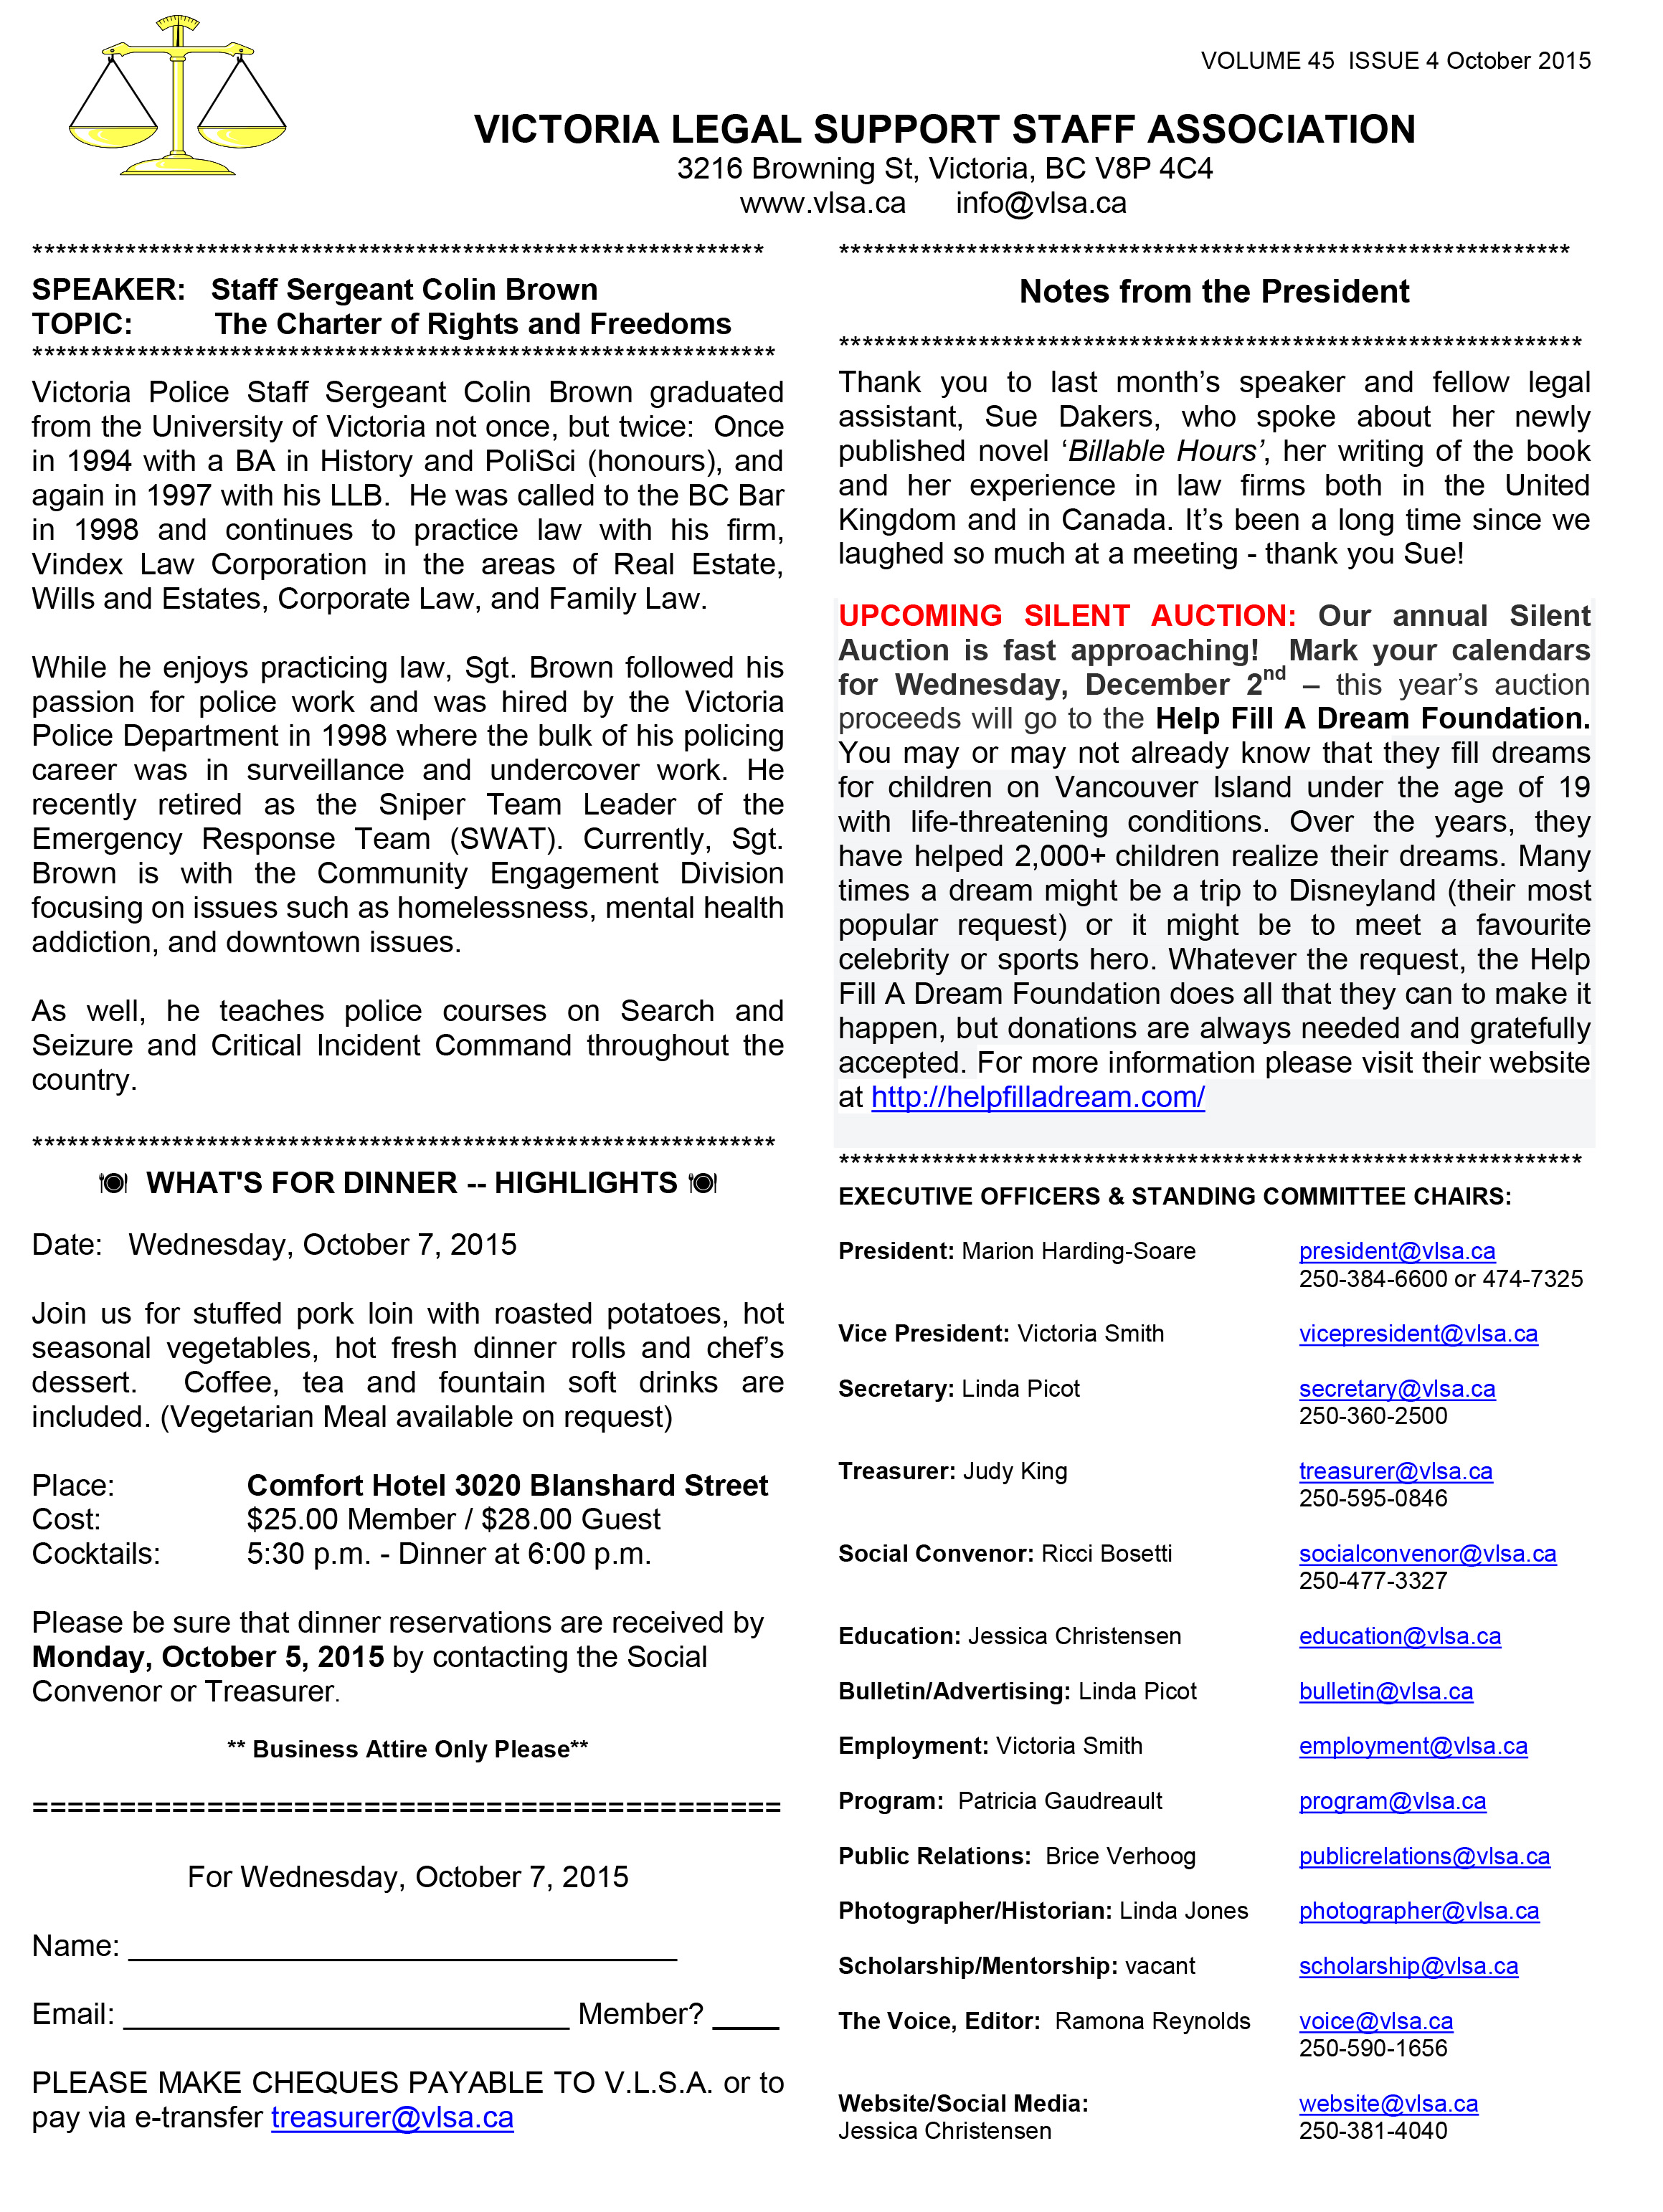 Microsoft Word - VLSA bulletin Oct 2015 DRAFT